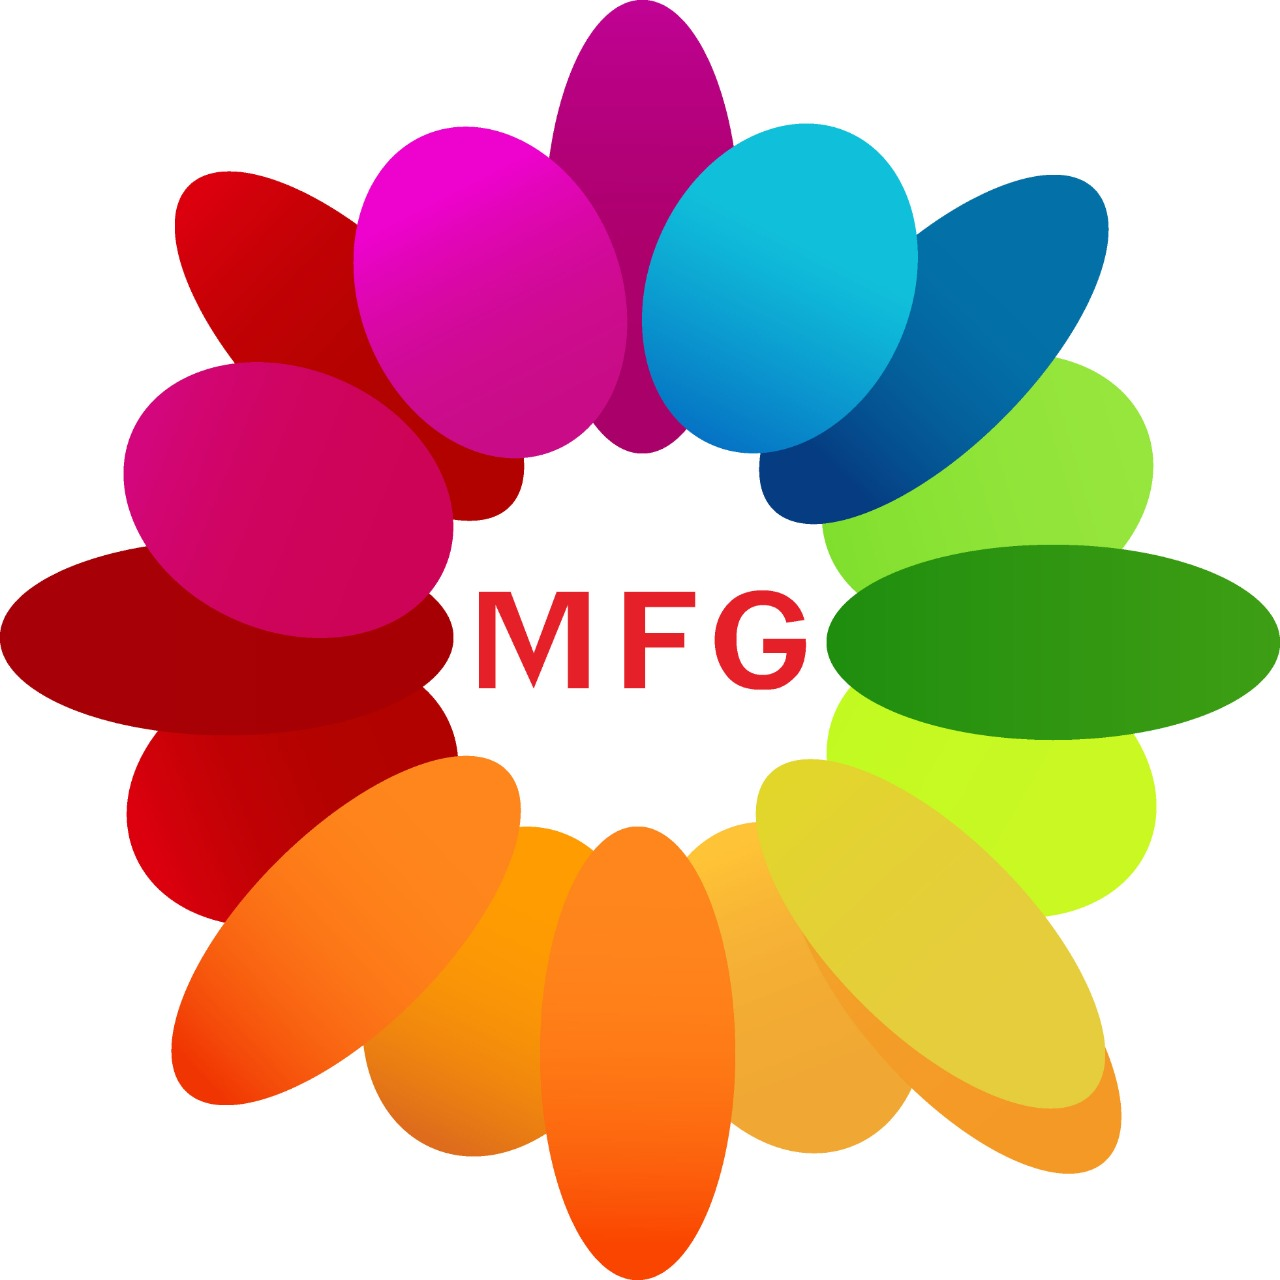 Bunch of 20 red and yellow carnations with basket of Almonds